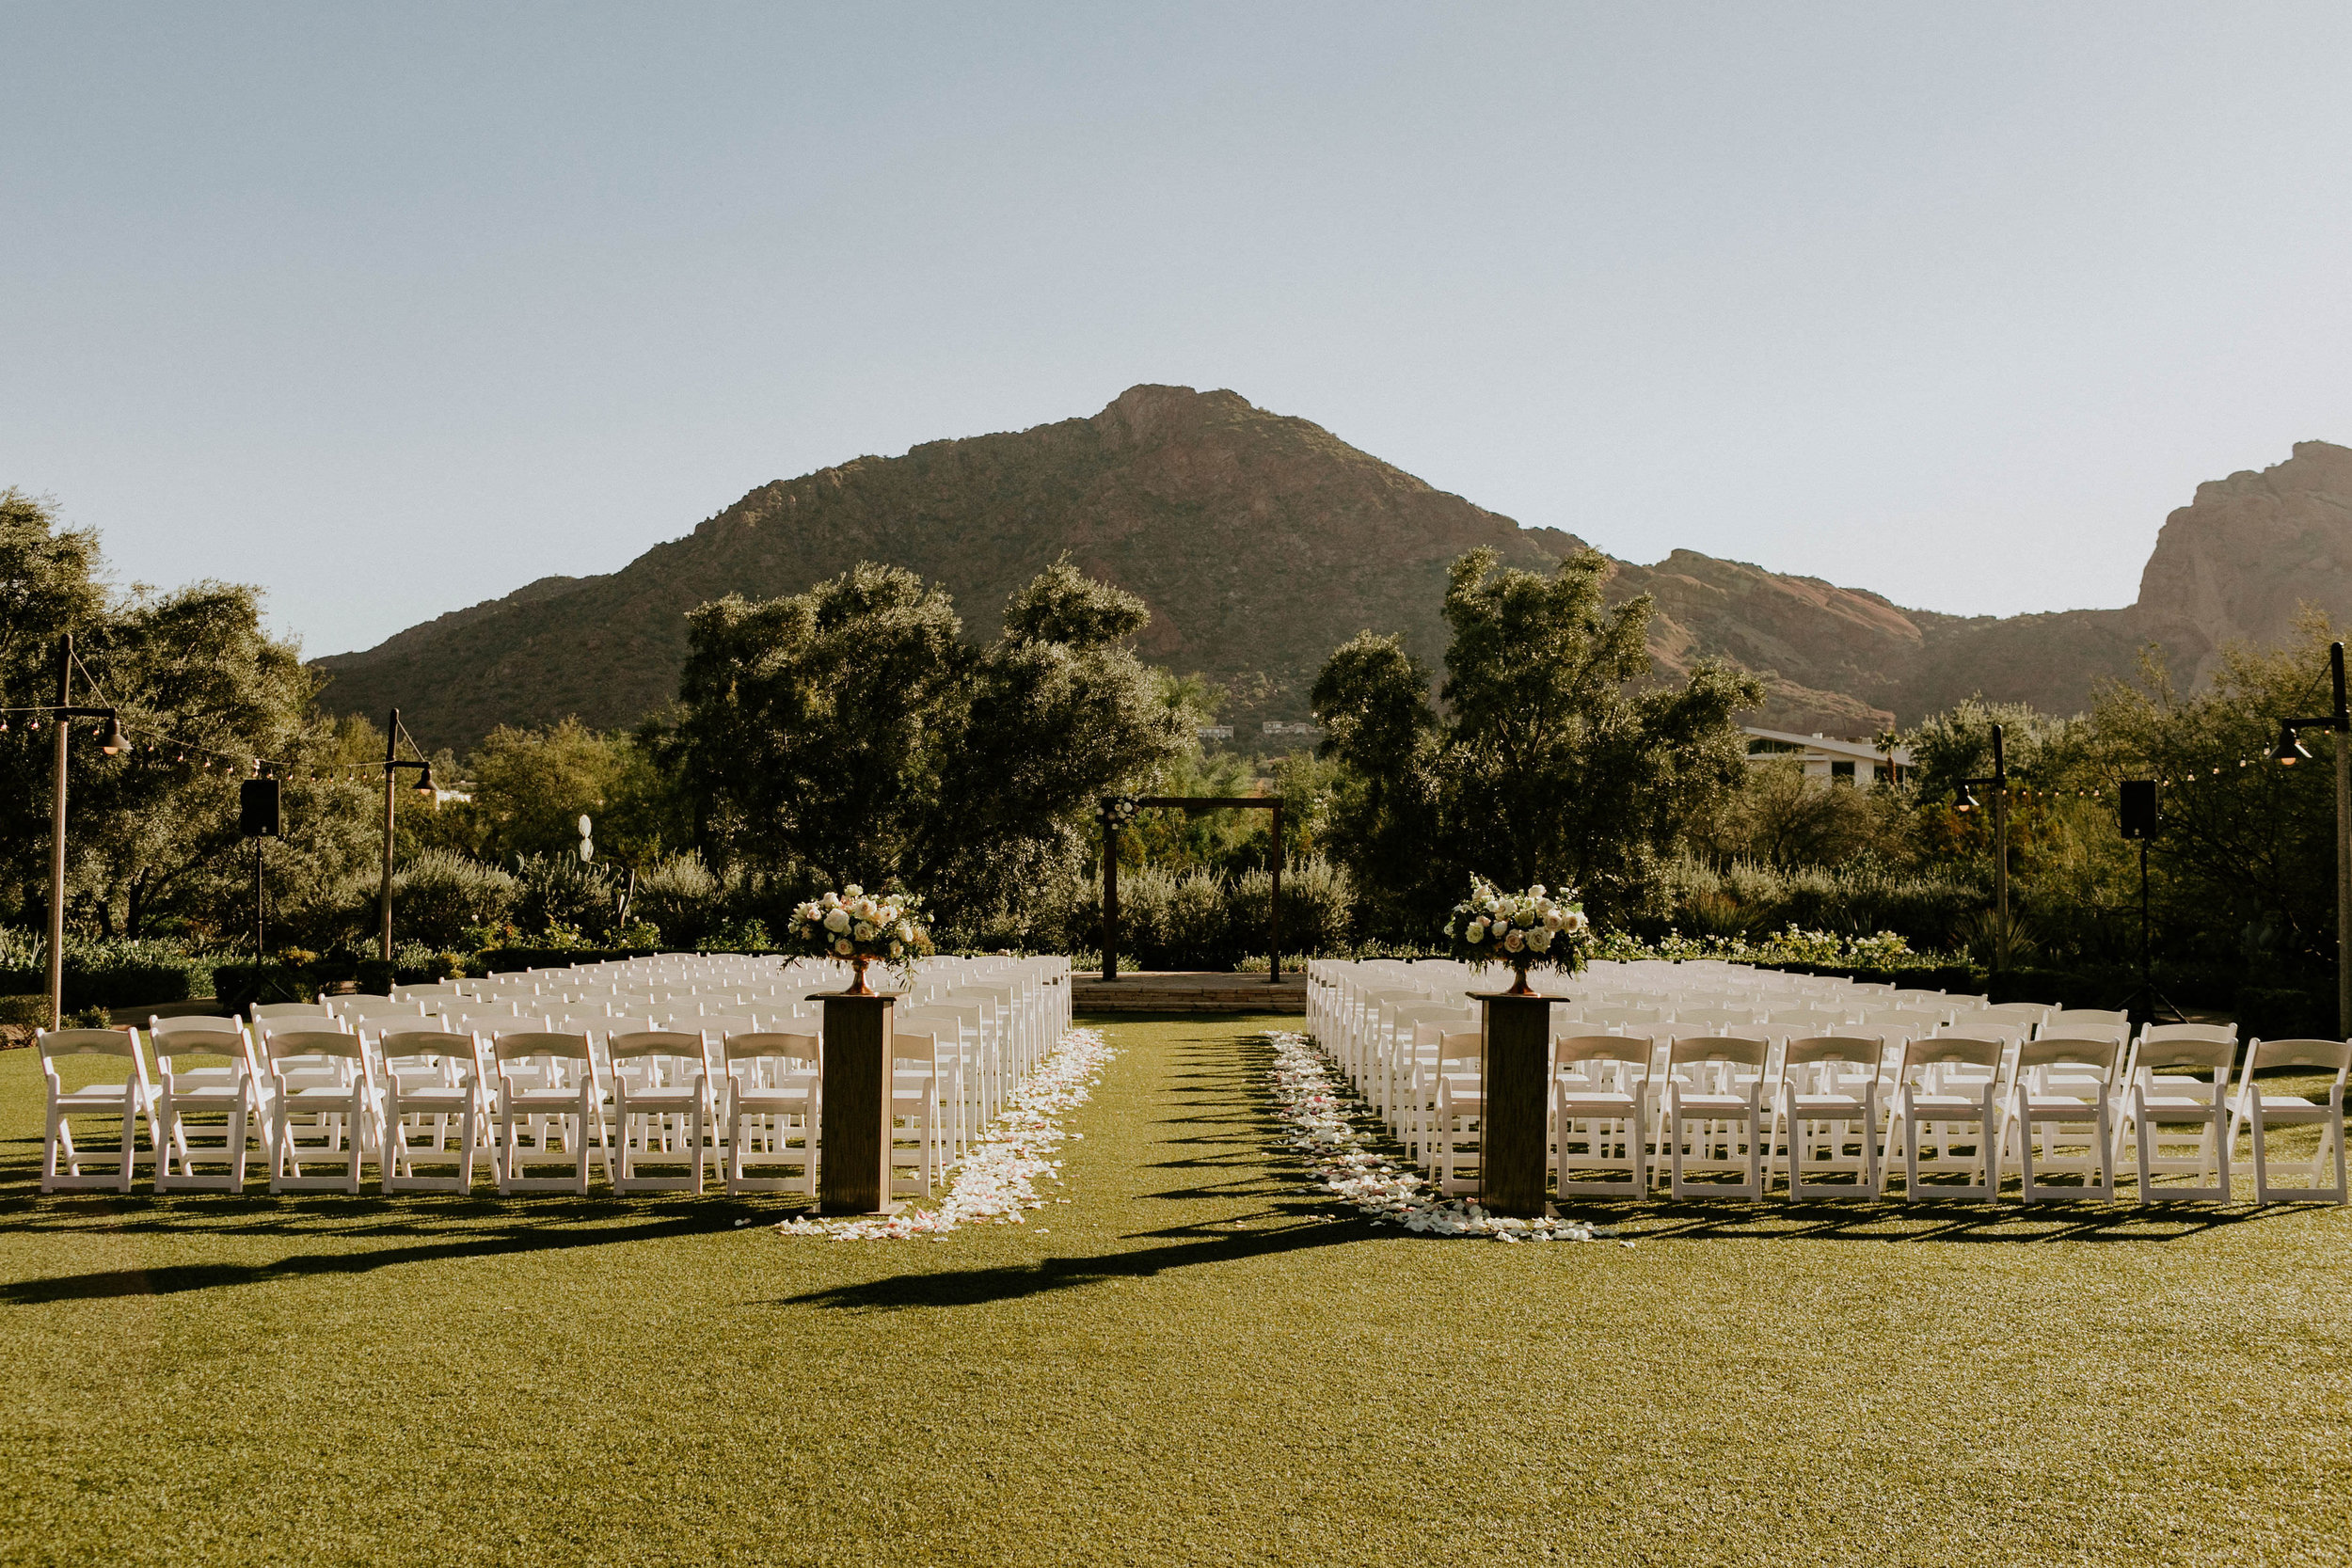 Ceremony location at El Chorro Wedding space